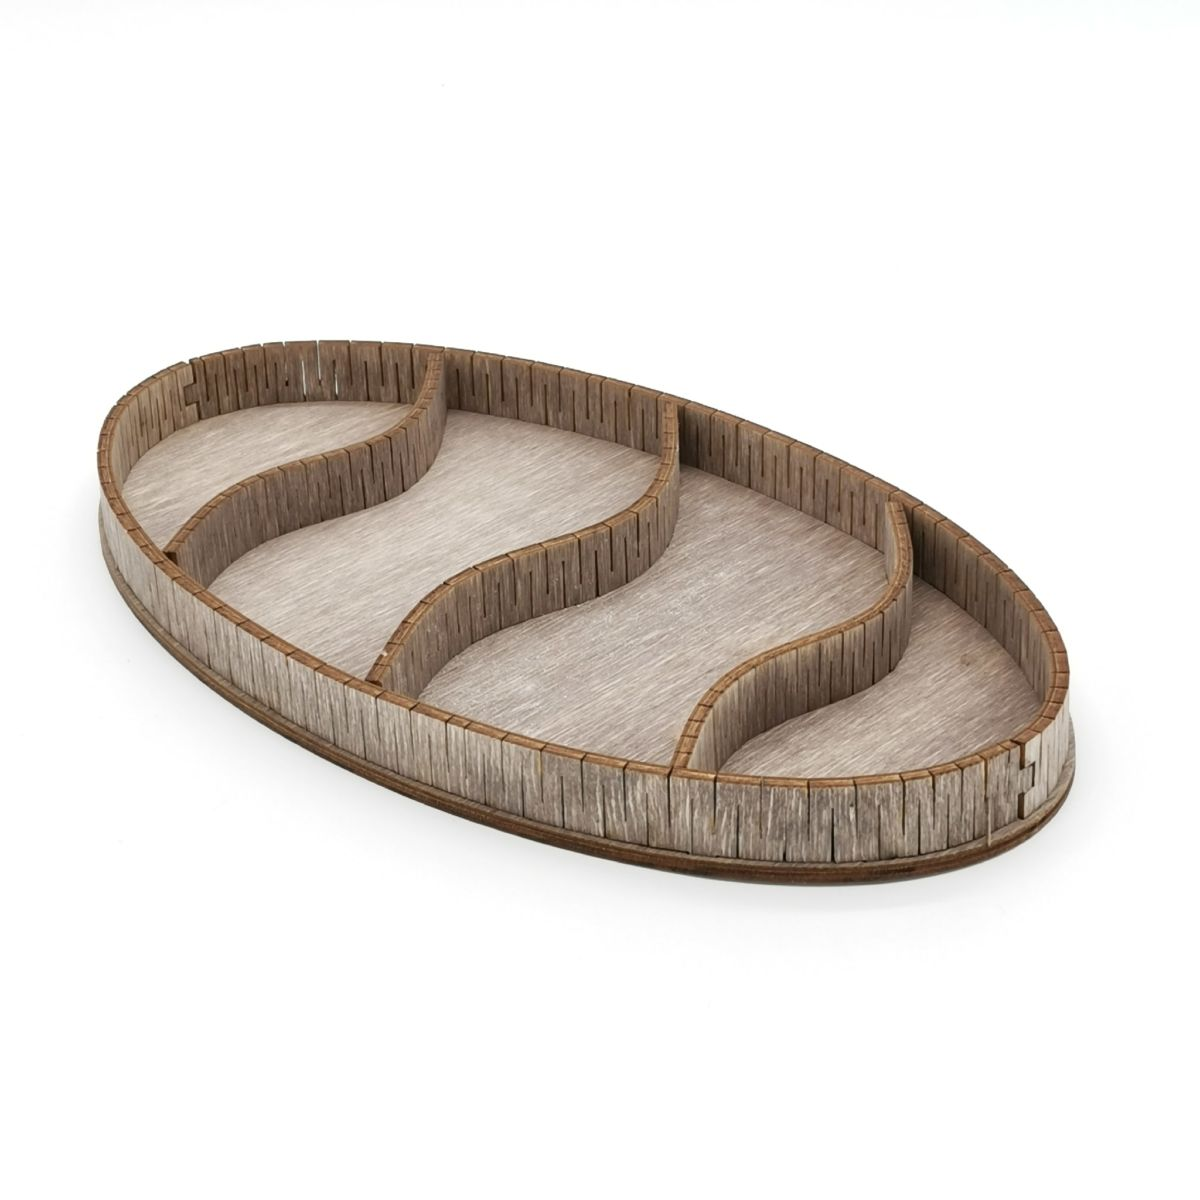 Laser Cut Wooden 4-Section Divided Oval Tray Free Vector